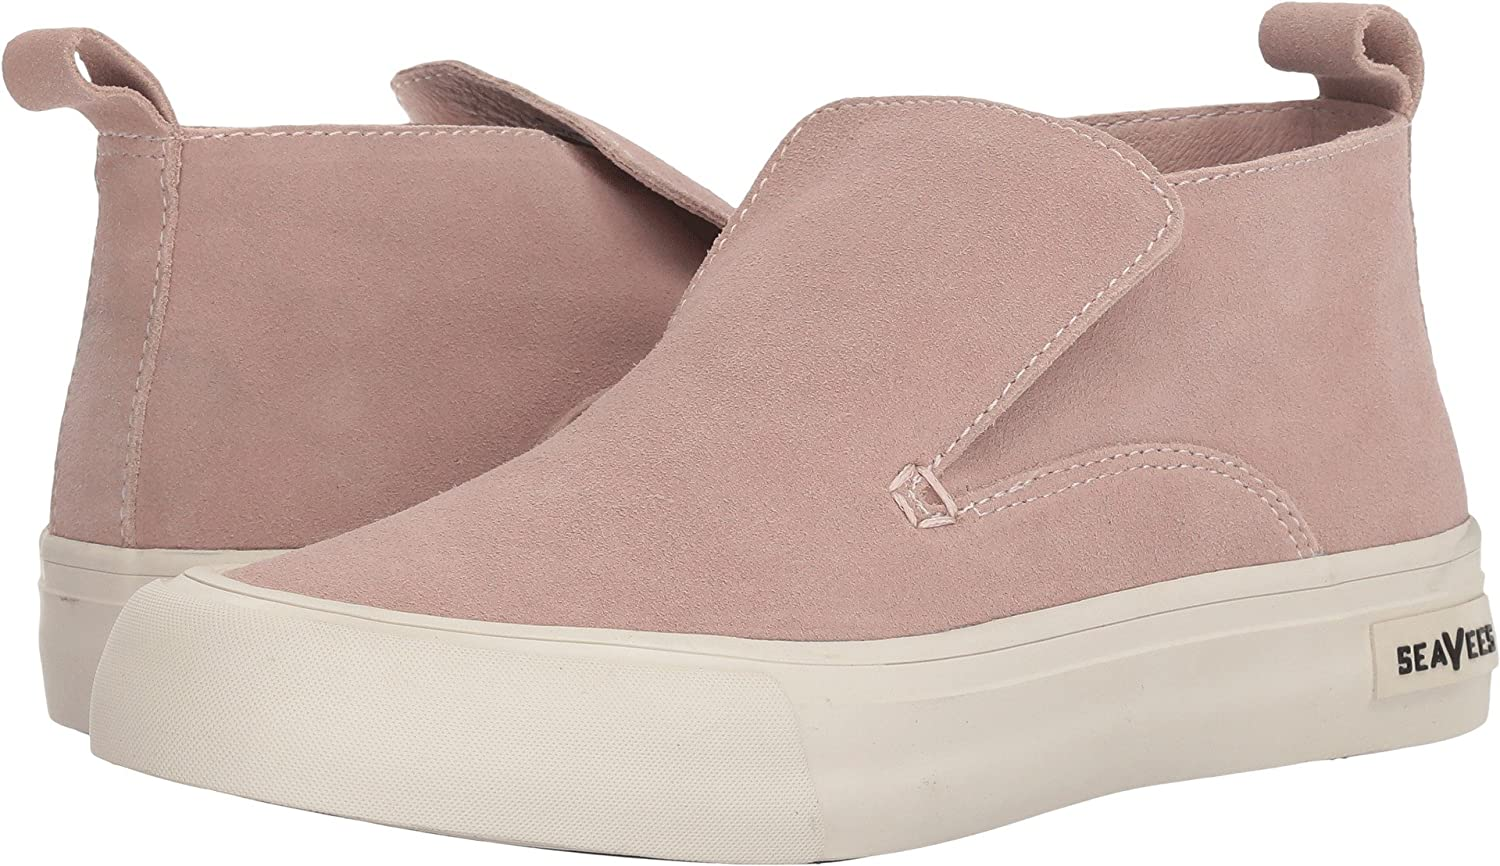 SeaVees Women's Huntington Middie Sneaker B008TV46DE 5 B(M) US|Rose Quartz